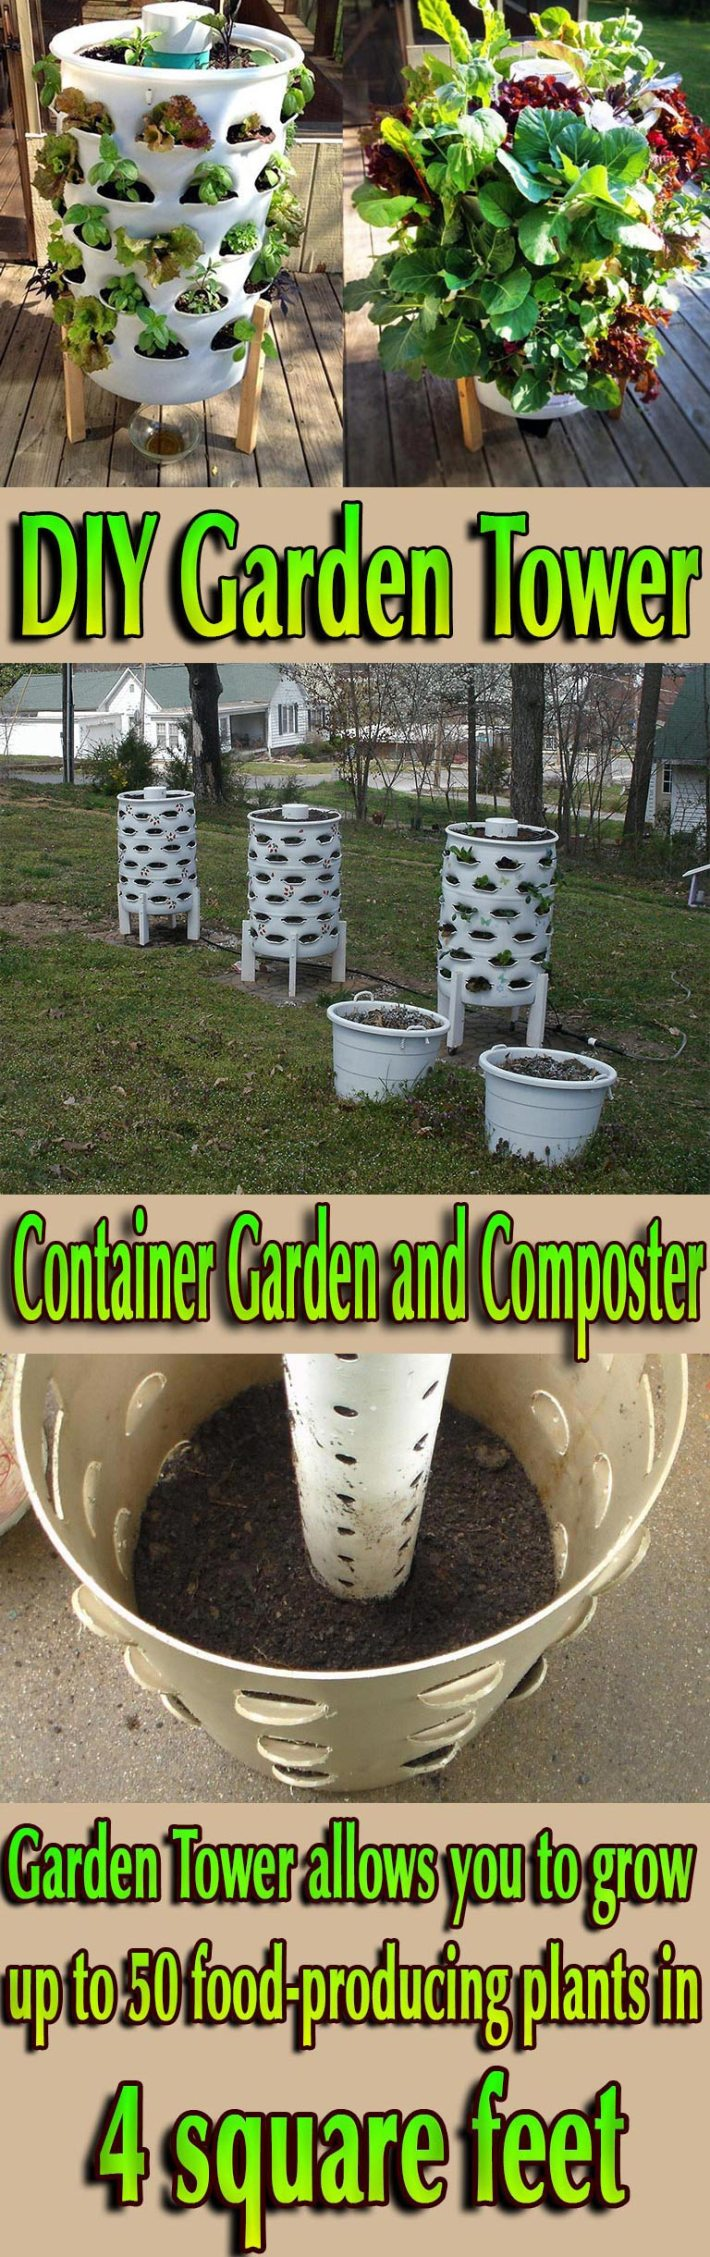 Container Garden and Composter